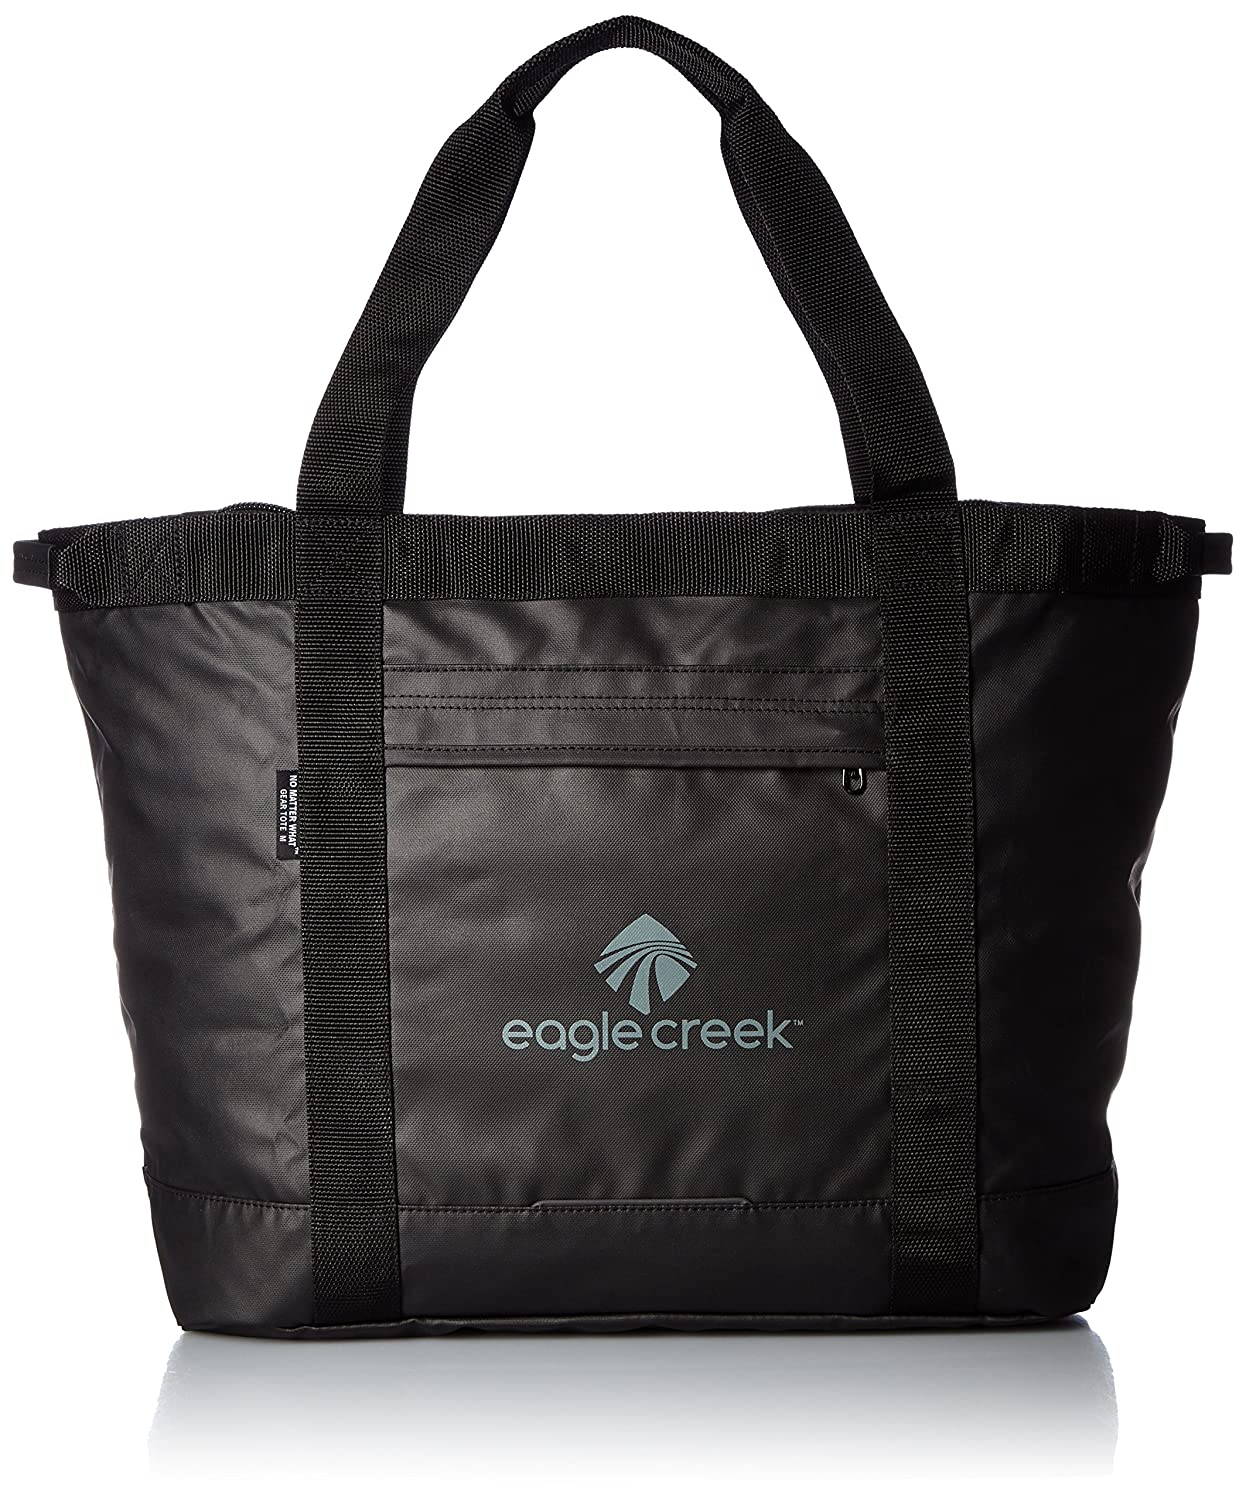 Eagle Creek No Matter What Gear Tote - Md, Unisex-Erwachsene Weekender, schwarz (Schwarz) - EC0A2URM010